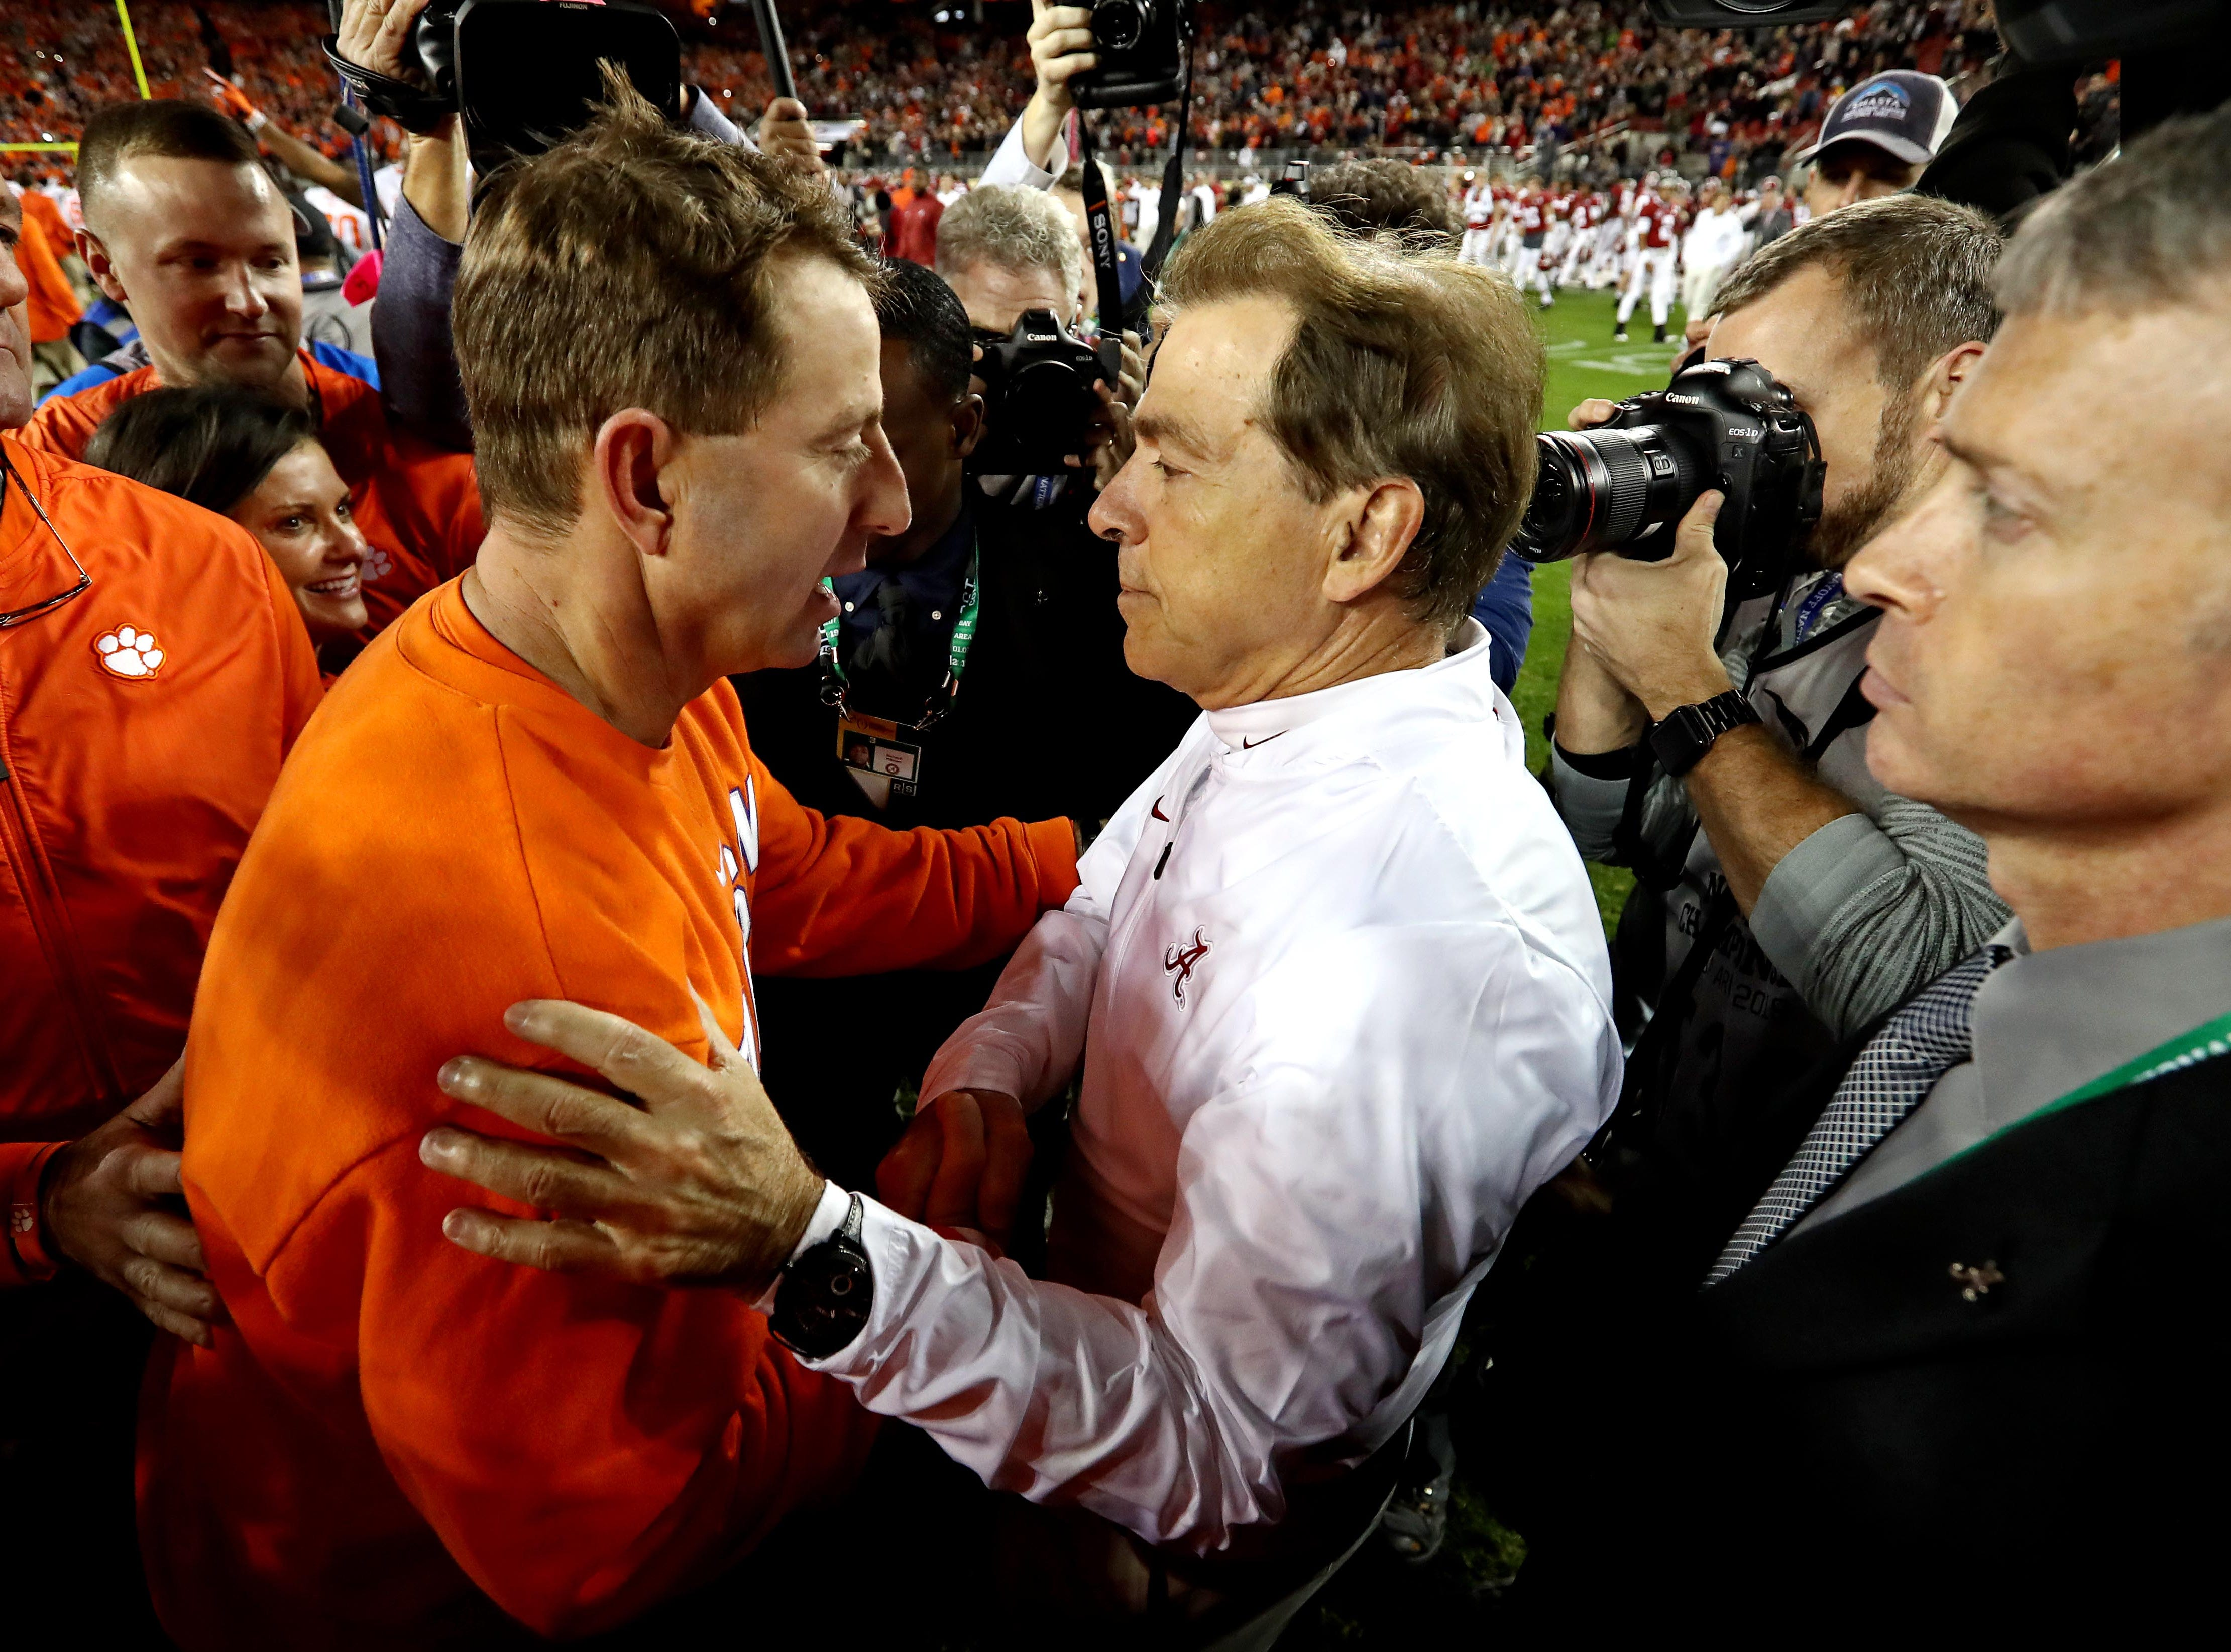 Dabo Swinney and Nick Saban shake hands at the end of the game.